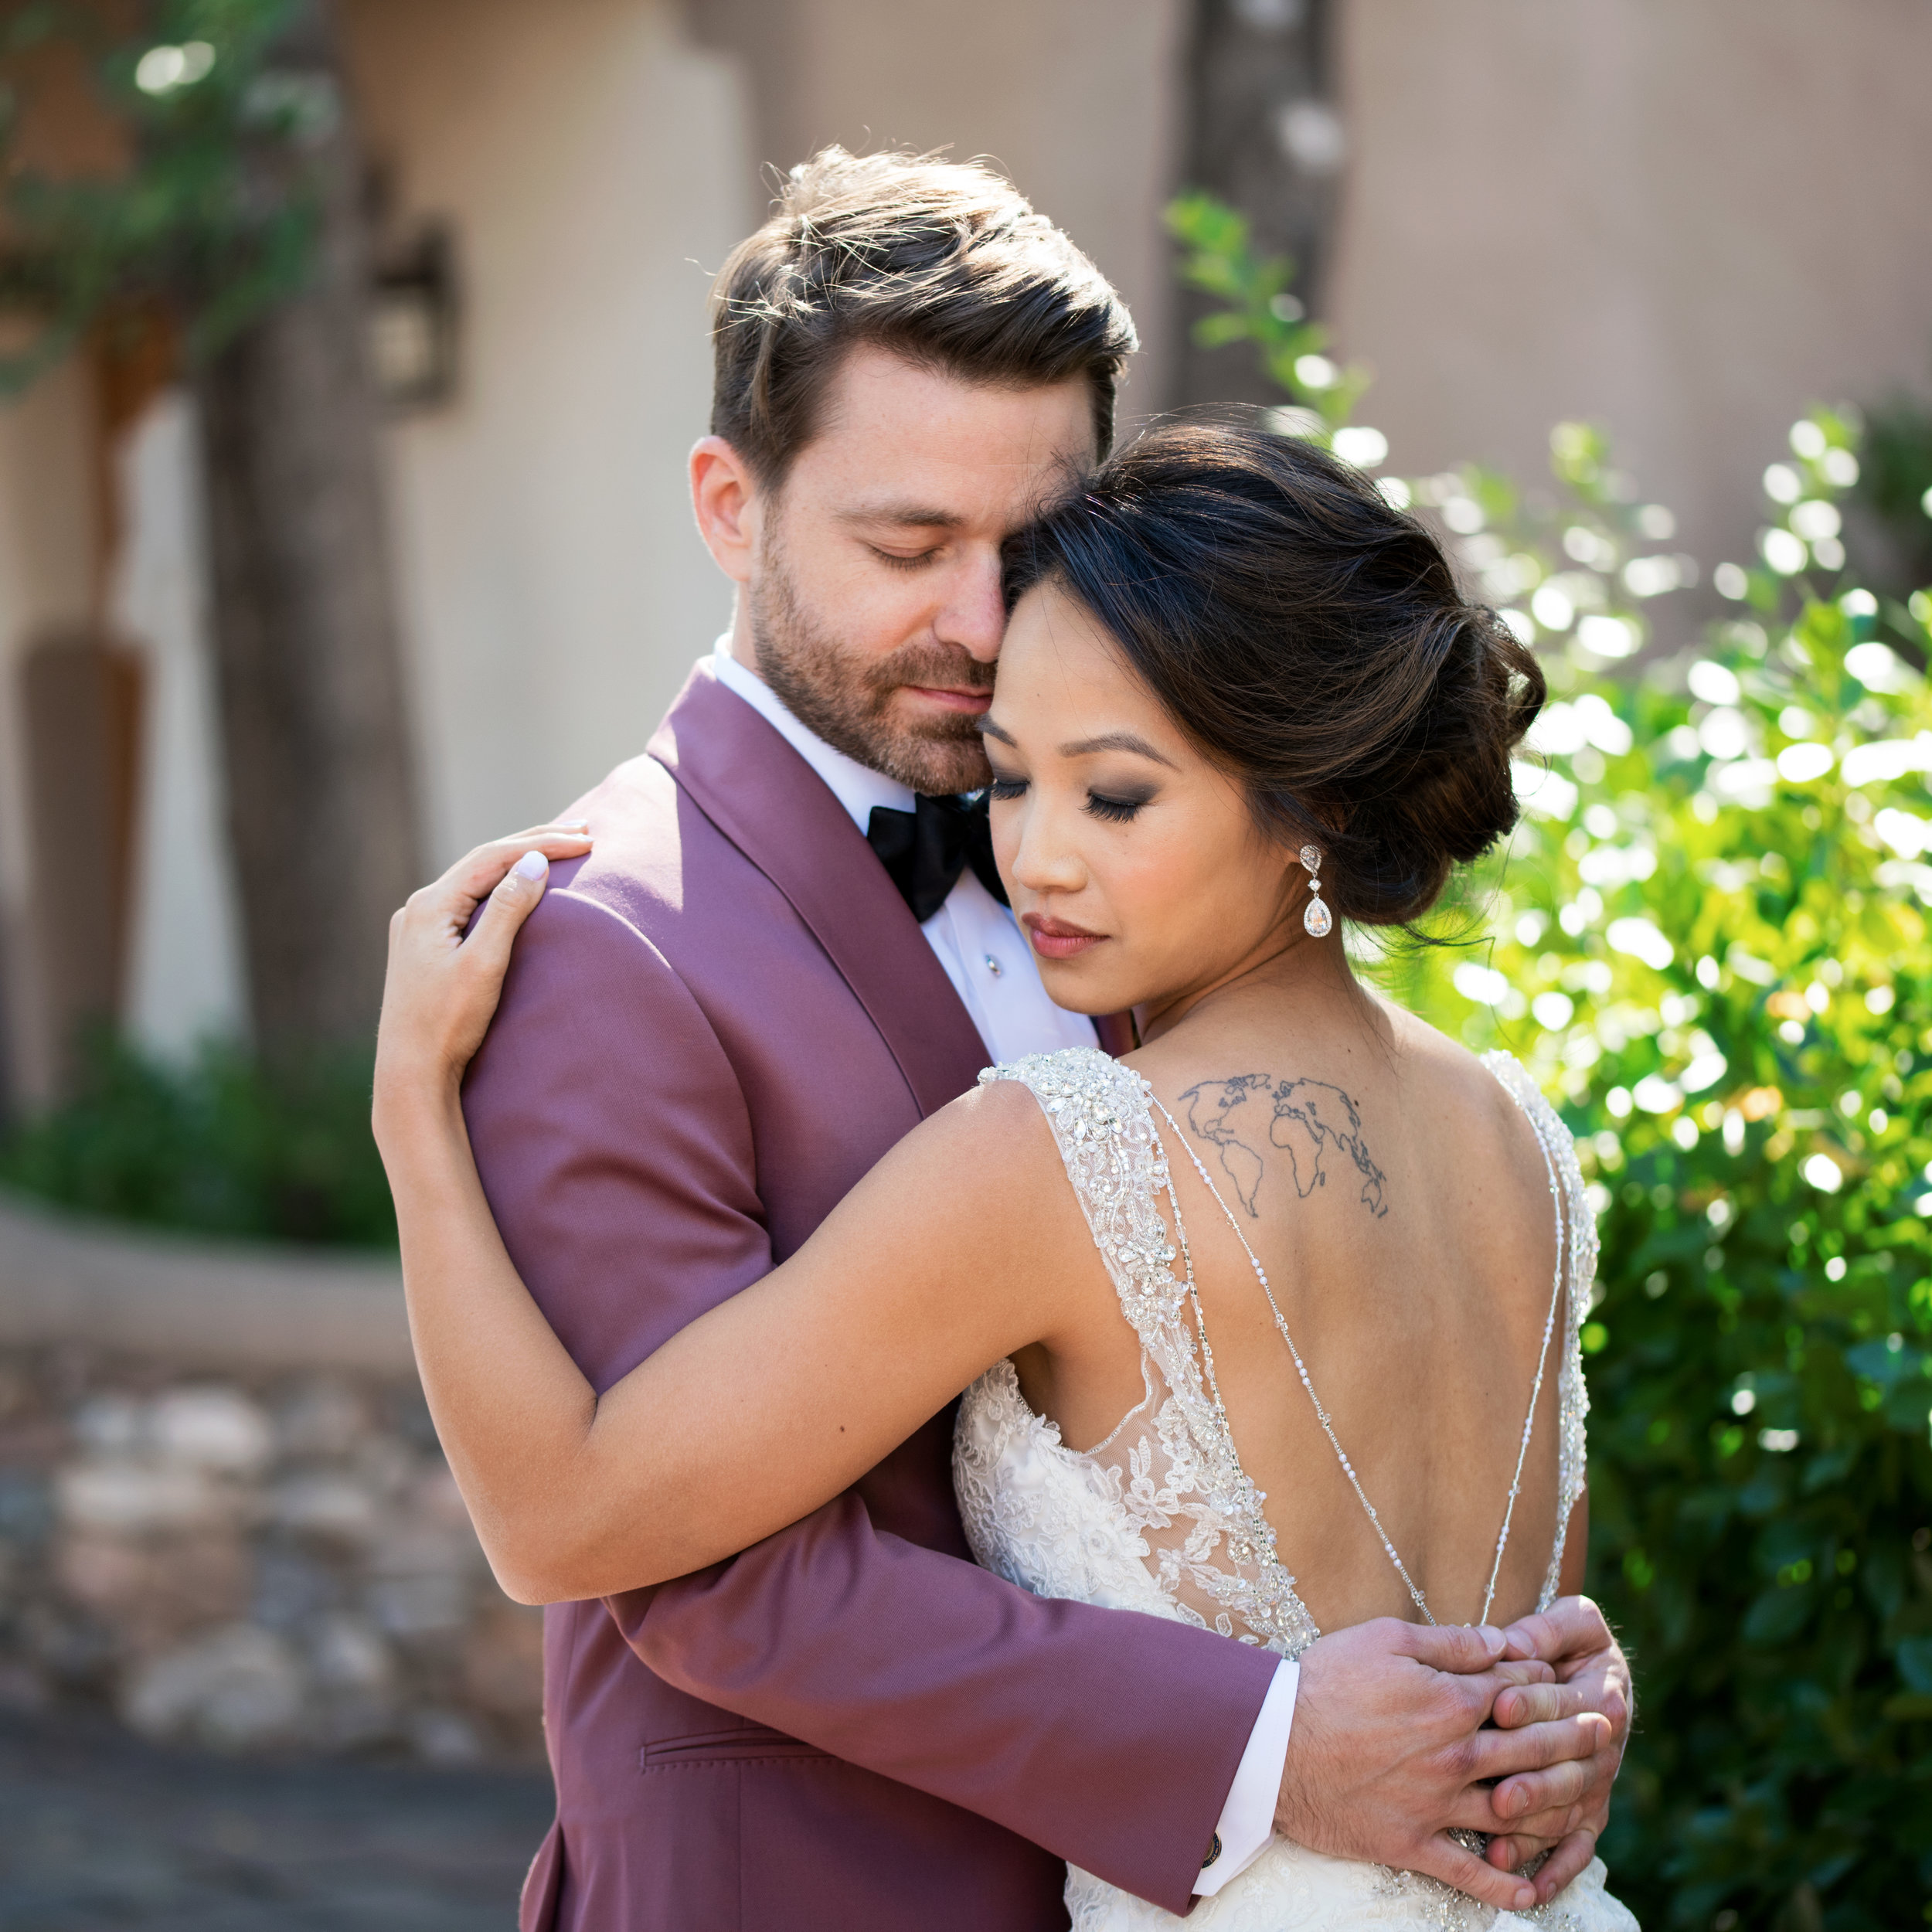 santa_fe_wedding_photographer_photography_photographers_in_santa_fe_nm_new_mexico_destination_wedding_canyon_road_2_square_2.jpg